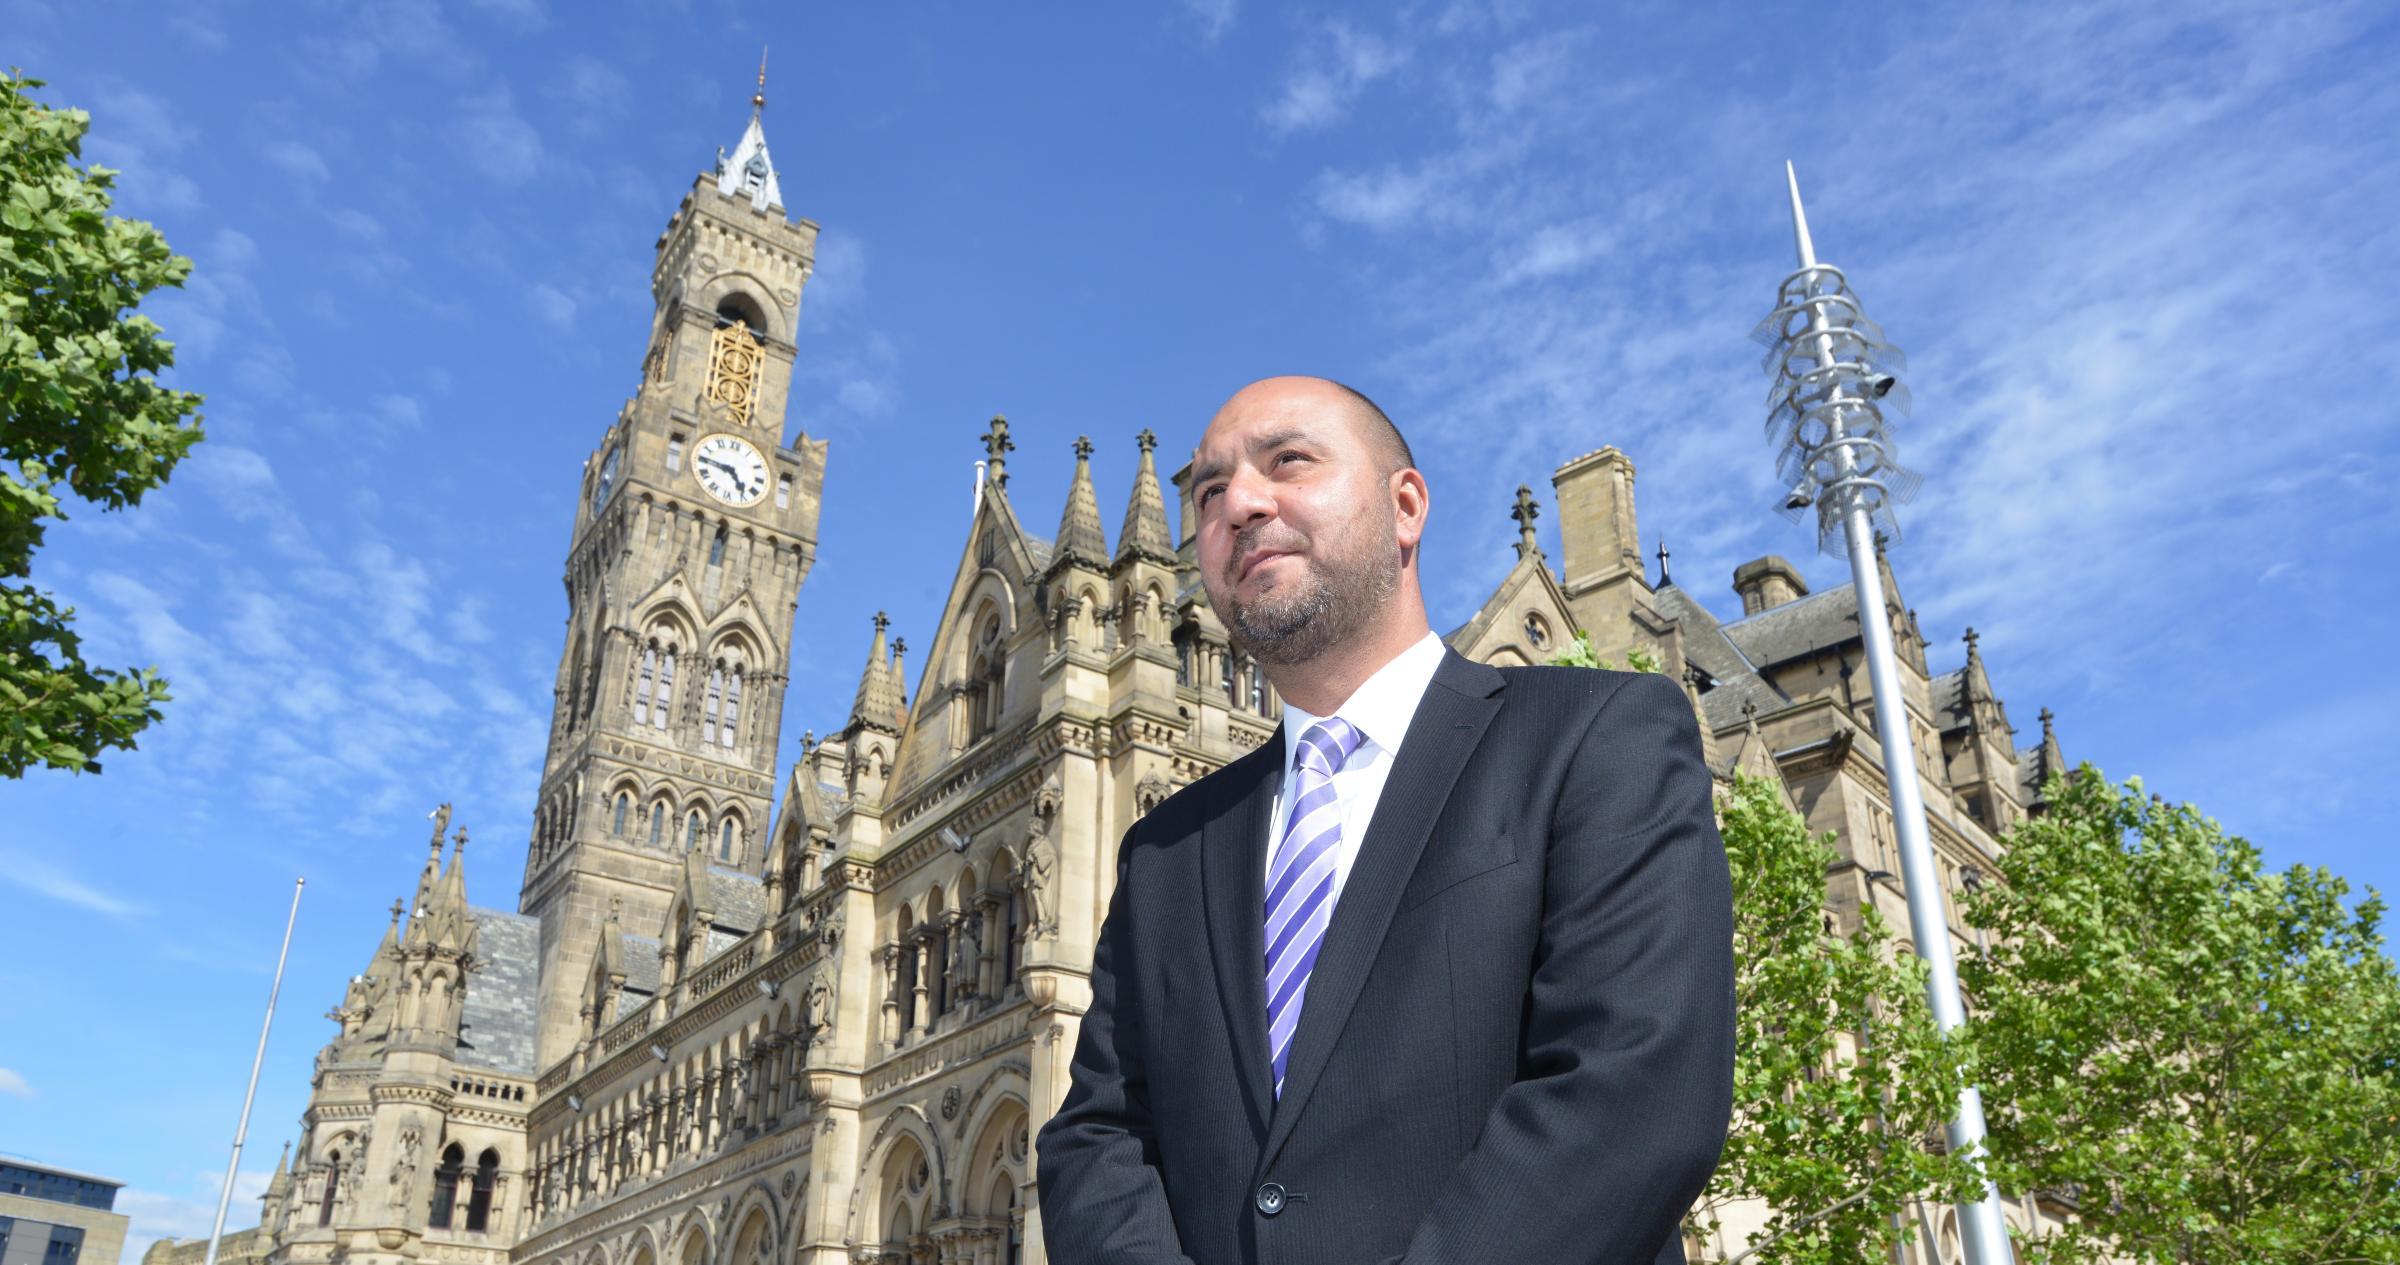 Cllr Imran Khan with backdrop of City Hall..